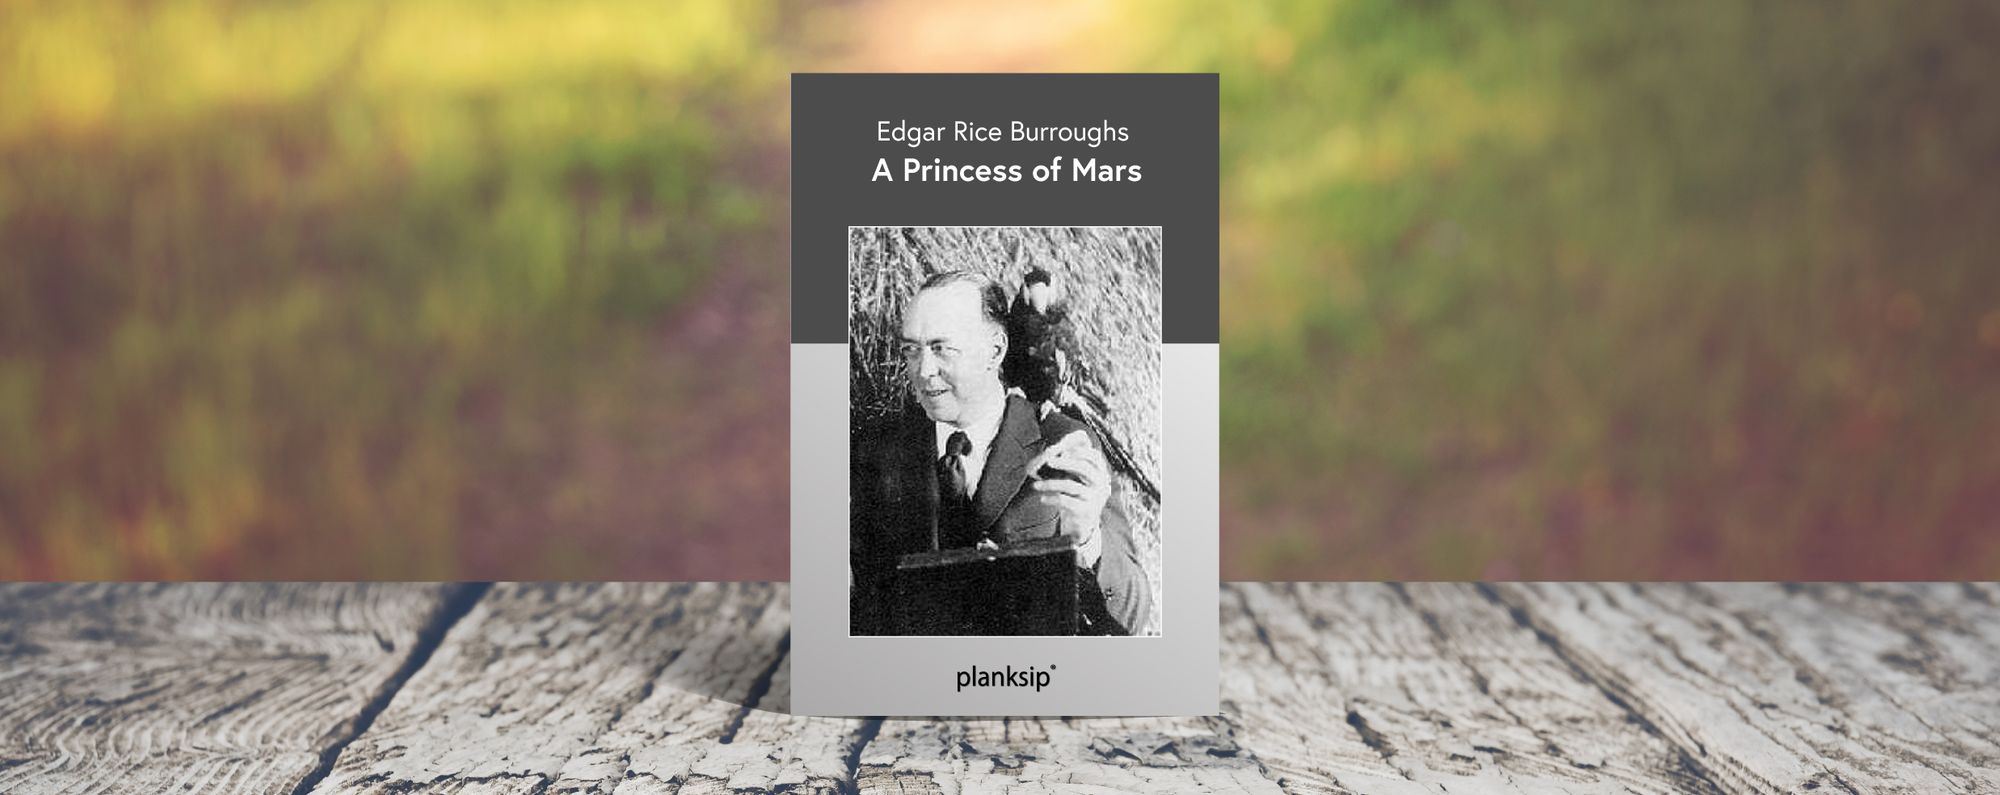 A Princess of Mars by Edgar Rice Burroughs (1875-1950). Published by planksip